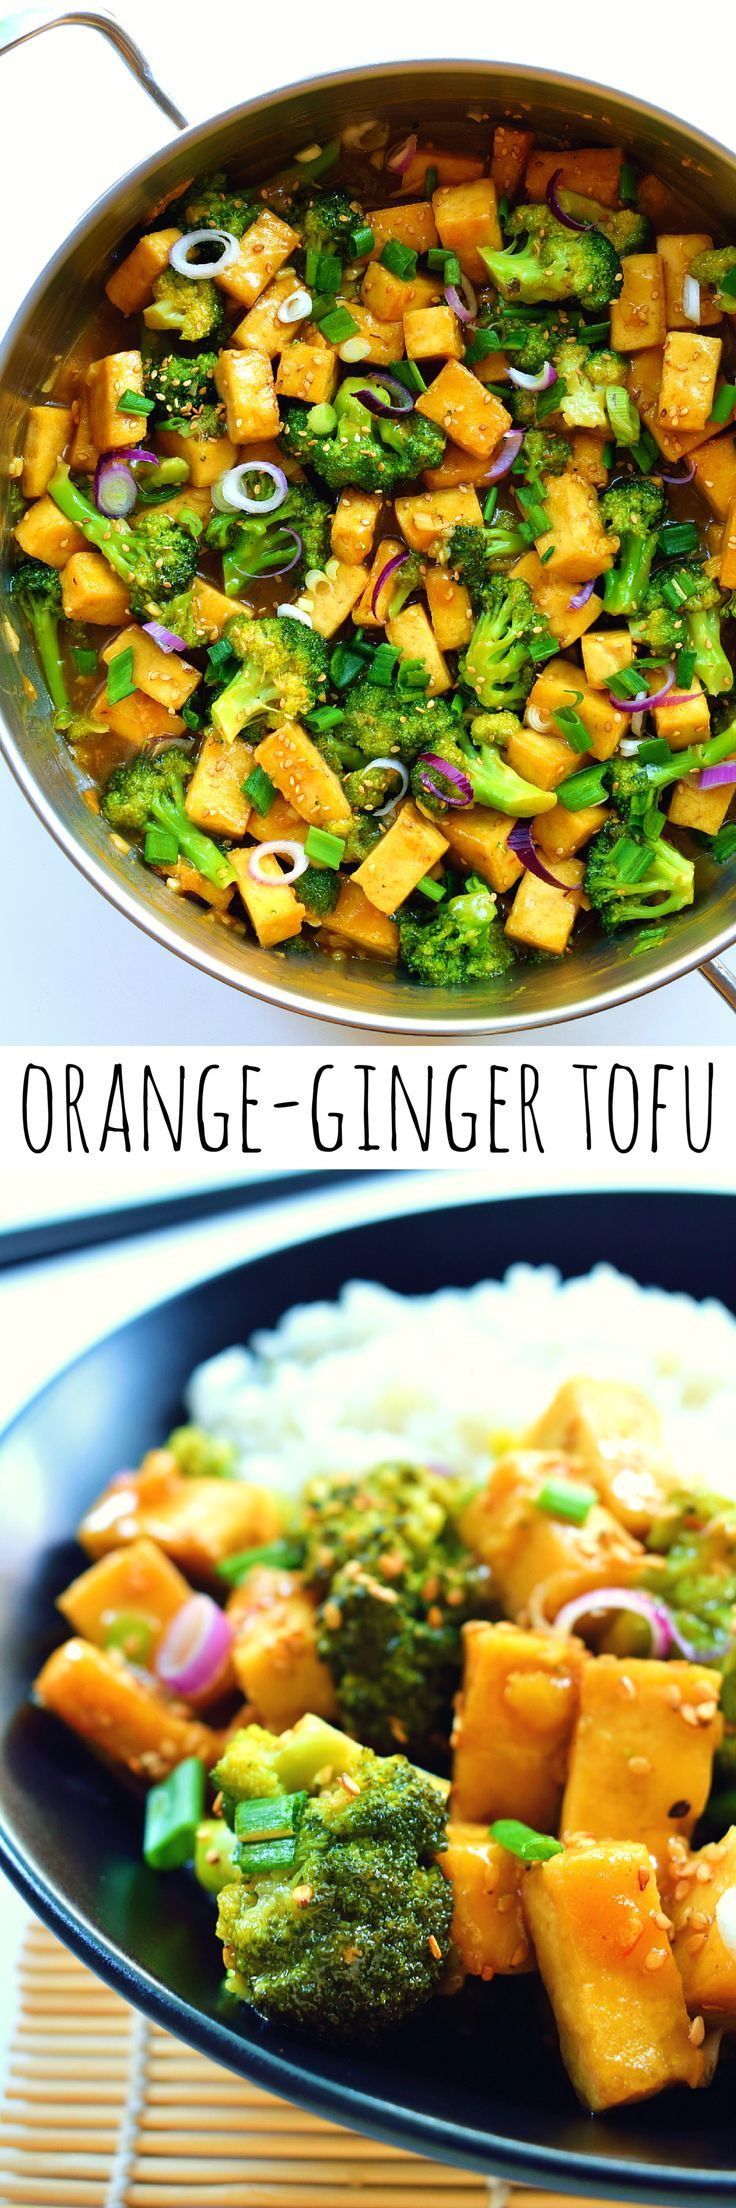 Orange- and ginger-glazed tofu with broccoli is a quick and easy 30-minute meal. Crispy tofu and steamed broccoli served in a sweet, sticky, ginger-y sauce makes for a filling vegetarian or vegan dinner.